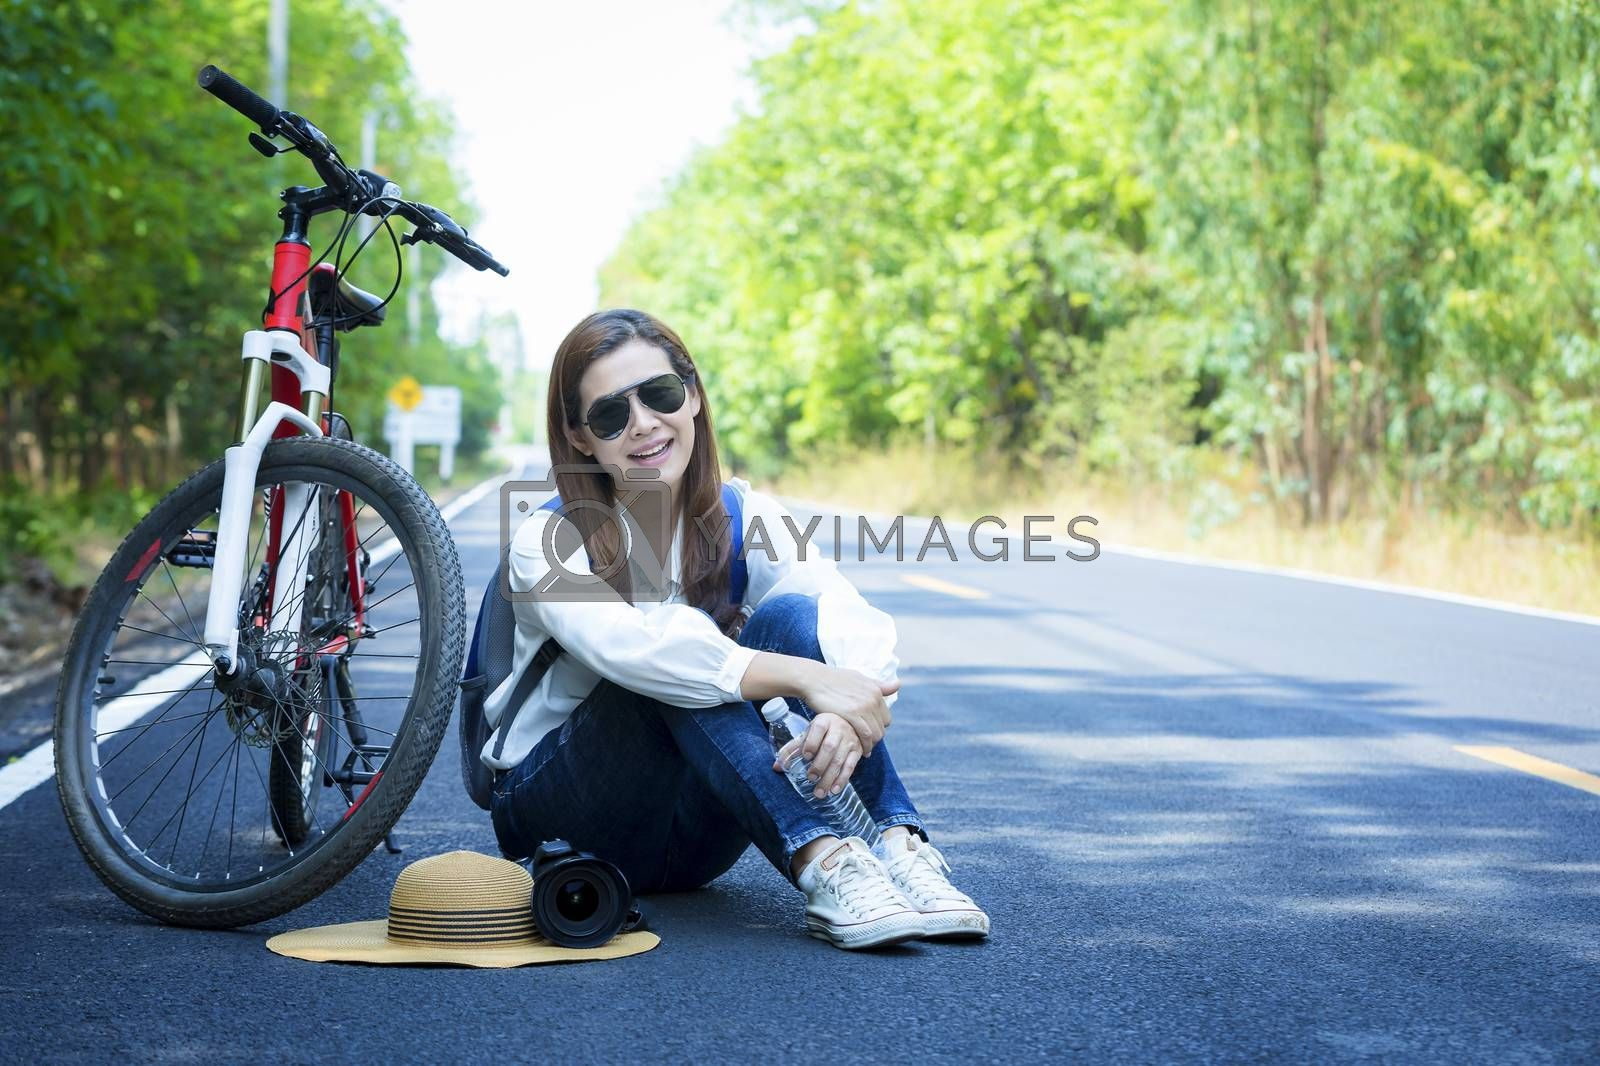 Beautiful woman sat on the side of the bicycle after biking to travel along the paved road on both sides of the road, full of beautiful green trees. The concept of travel and freedom.